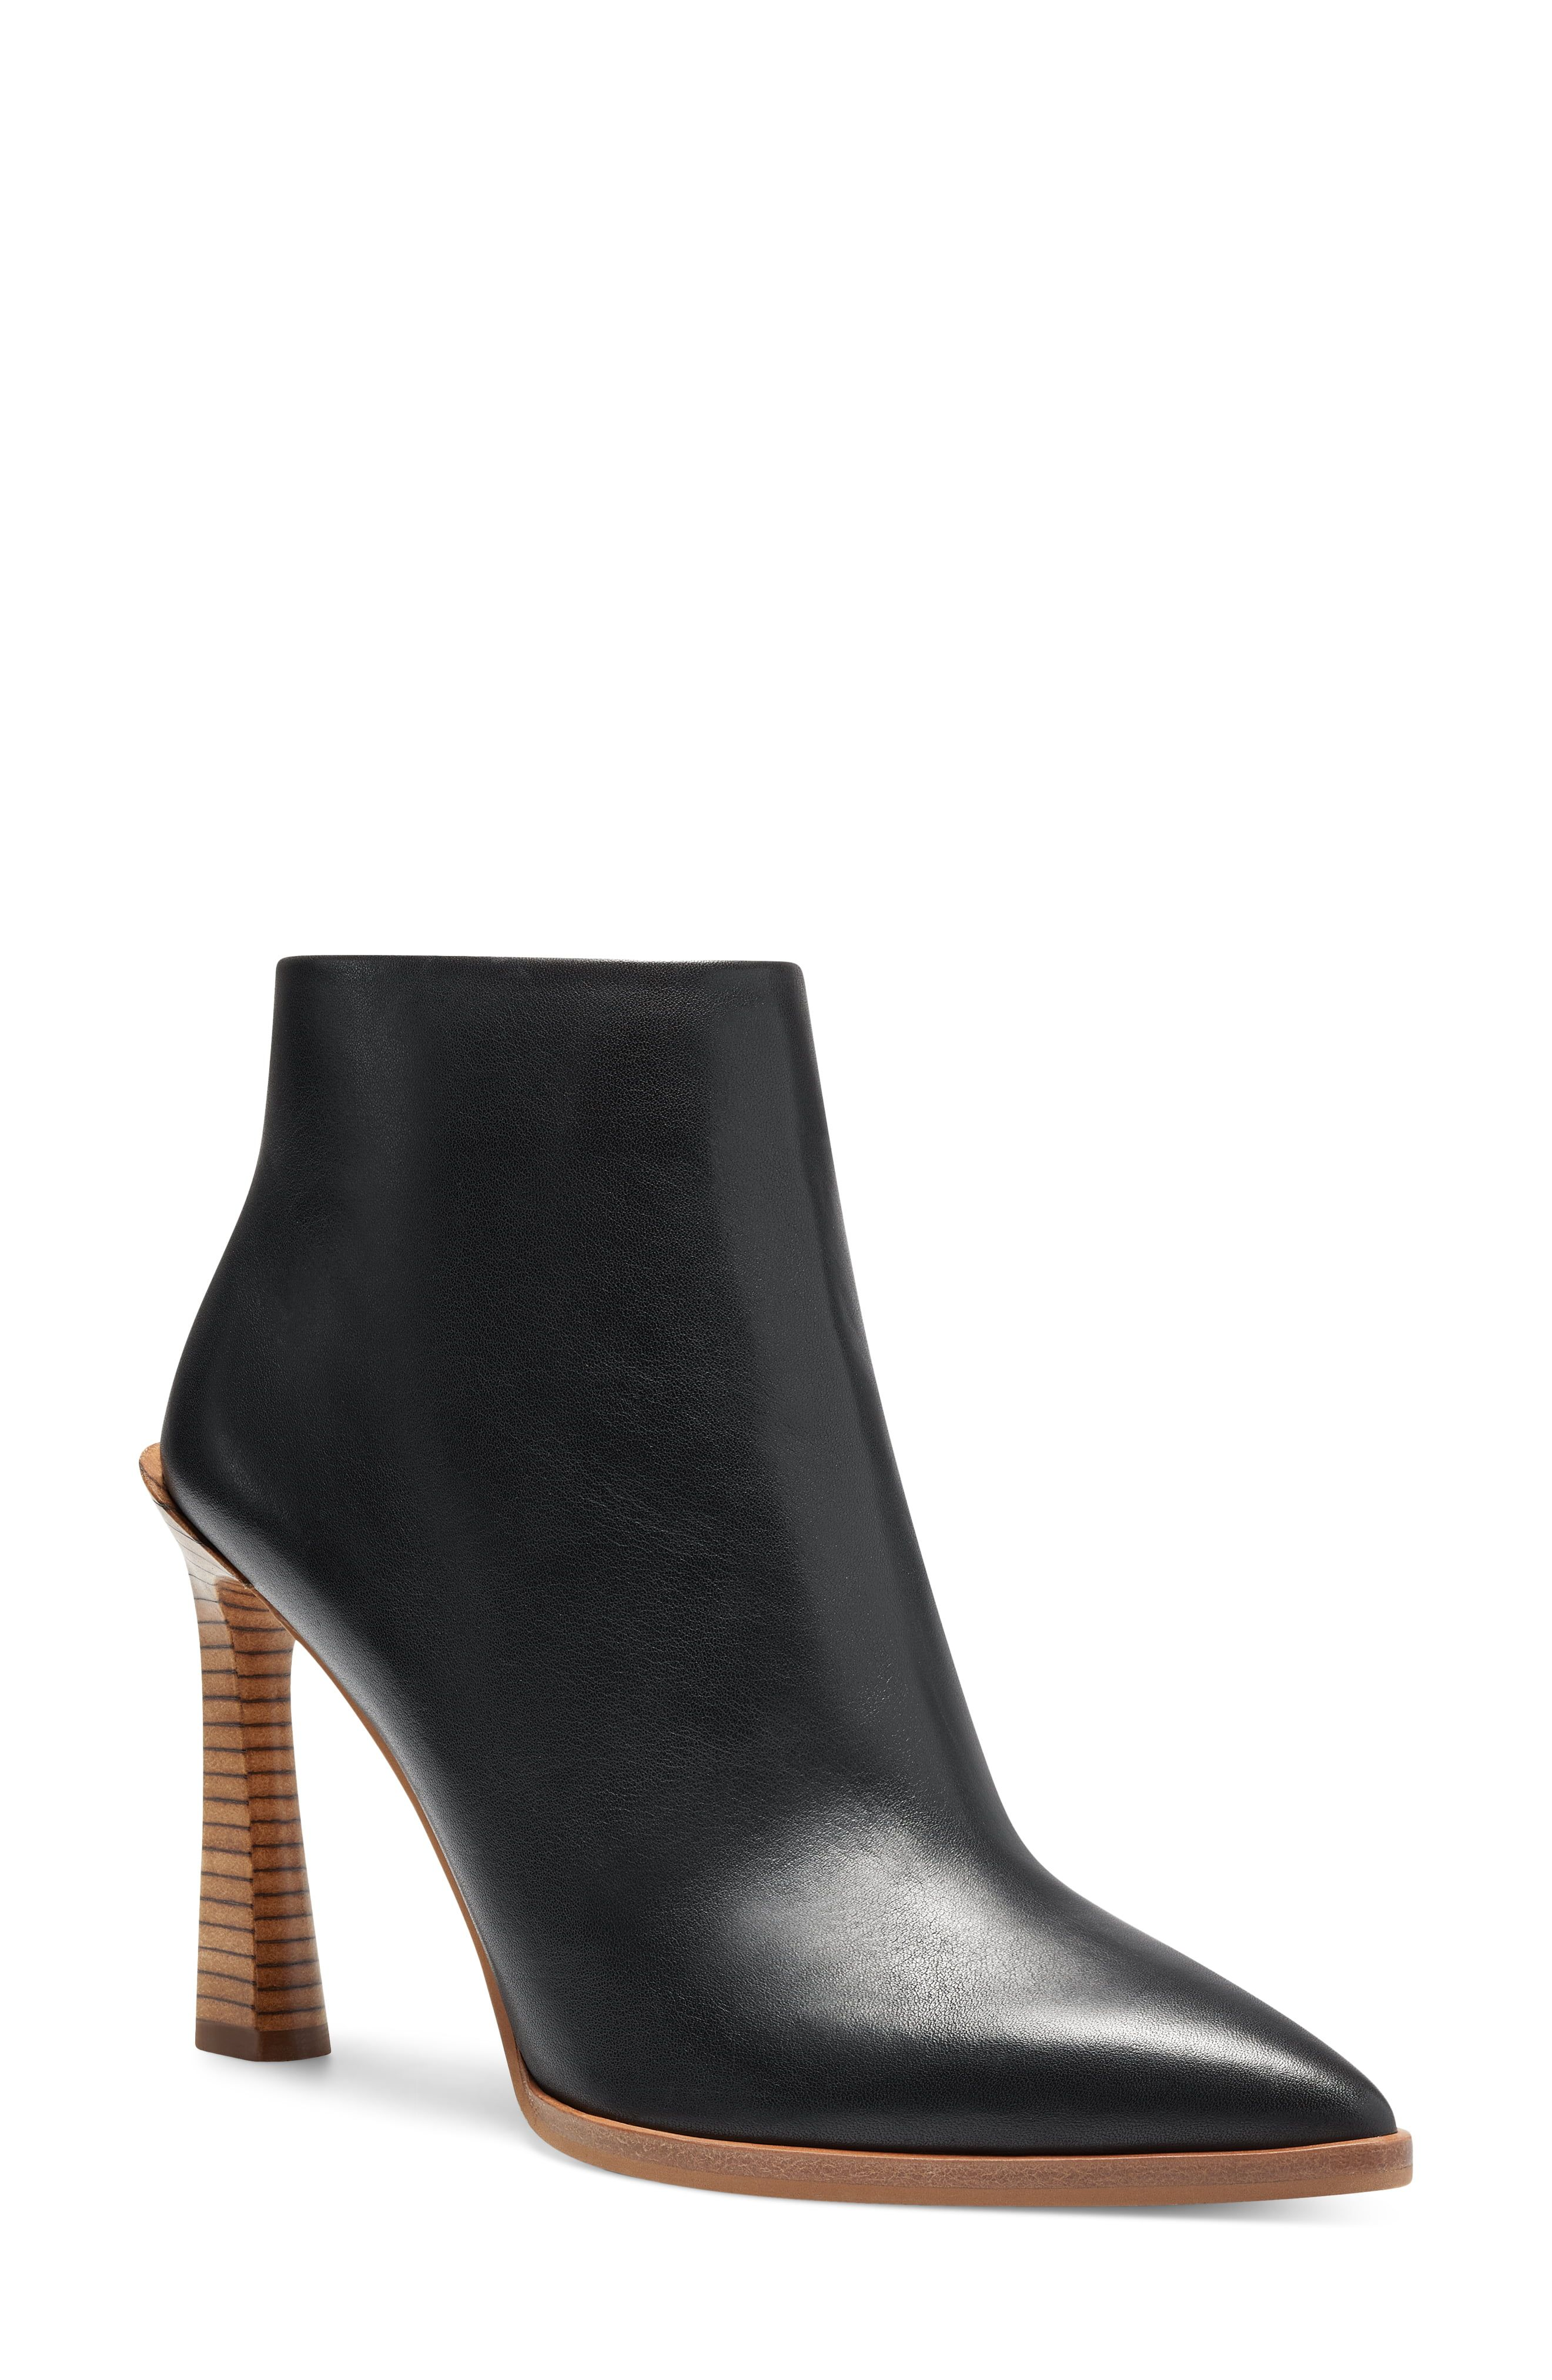 A slightly flared heel adds a sense of modern drama to this sleek pointy-toe bootie. Style Name:Vince Camuto Pezlee Pointed Toe Bootie (Women). Style Number: 6122358. Available in stores.